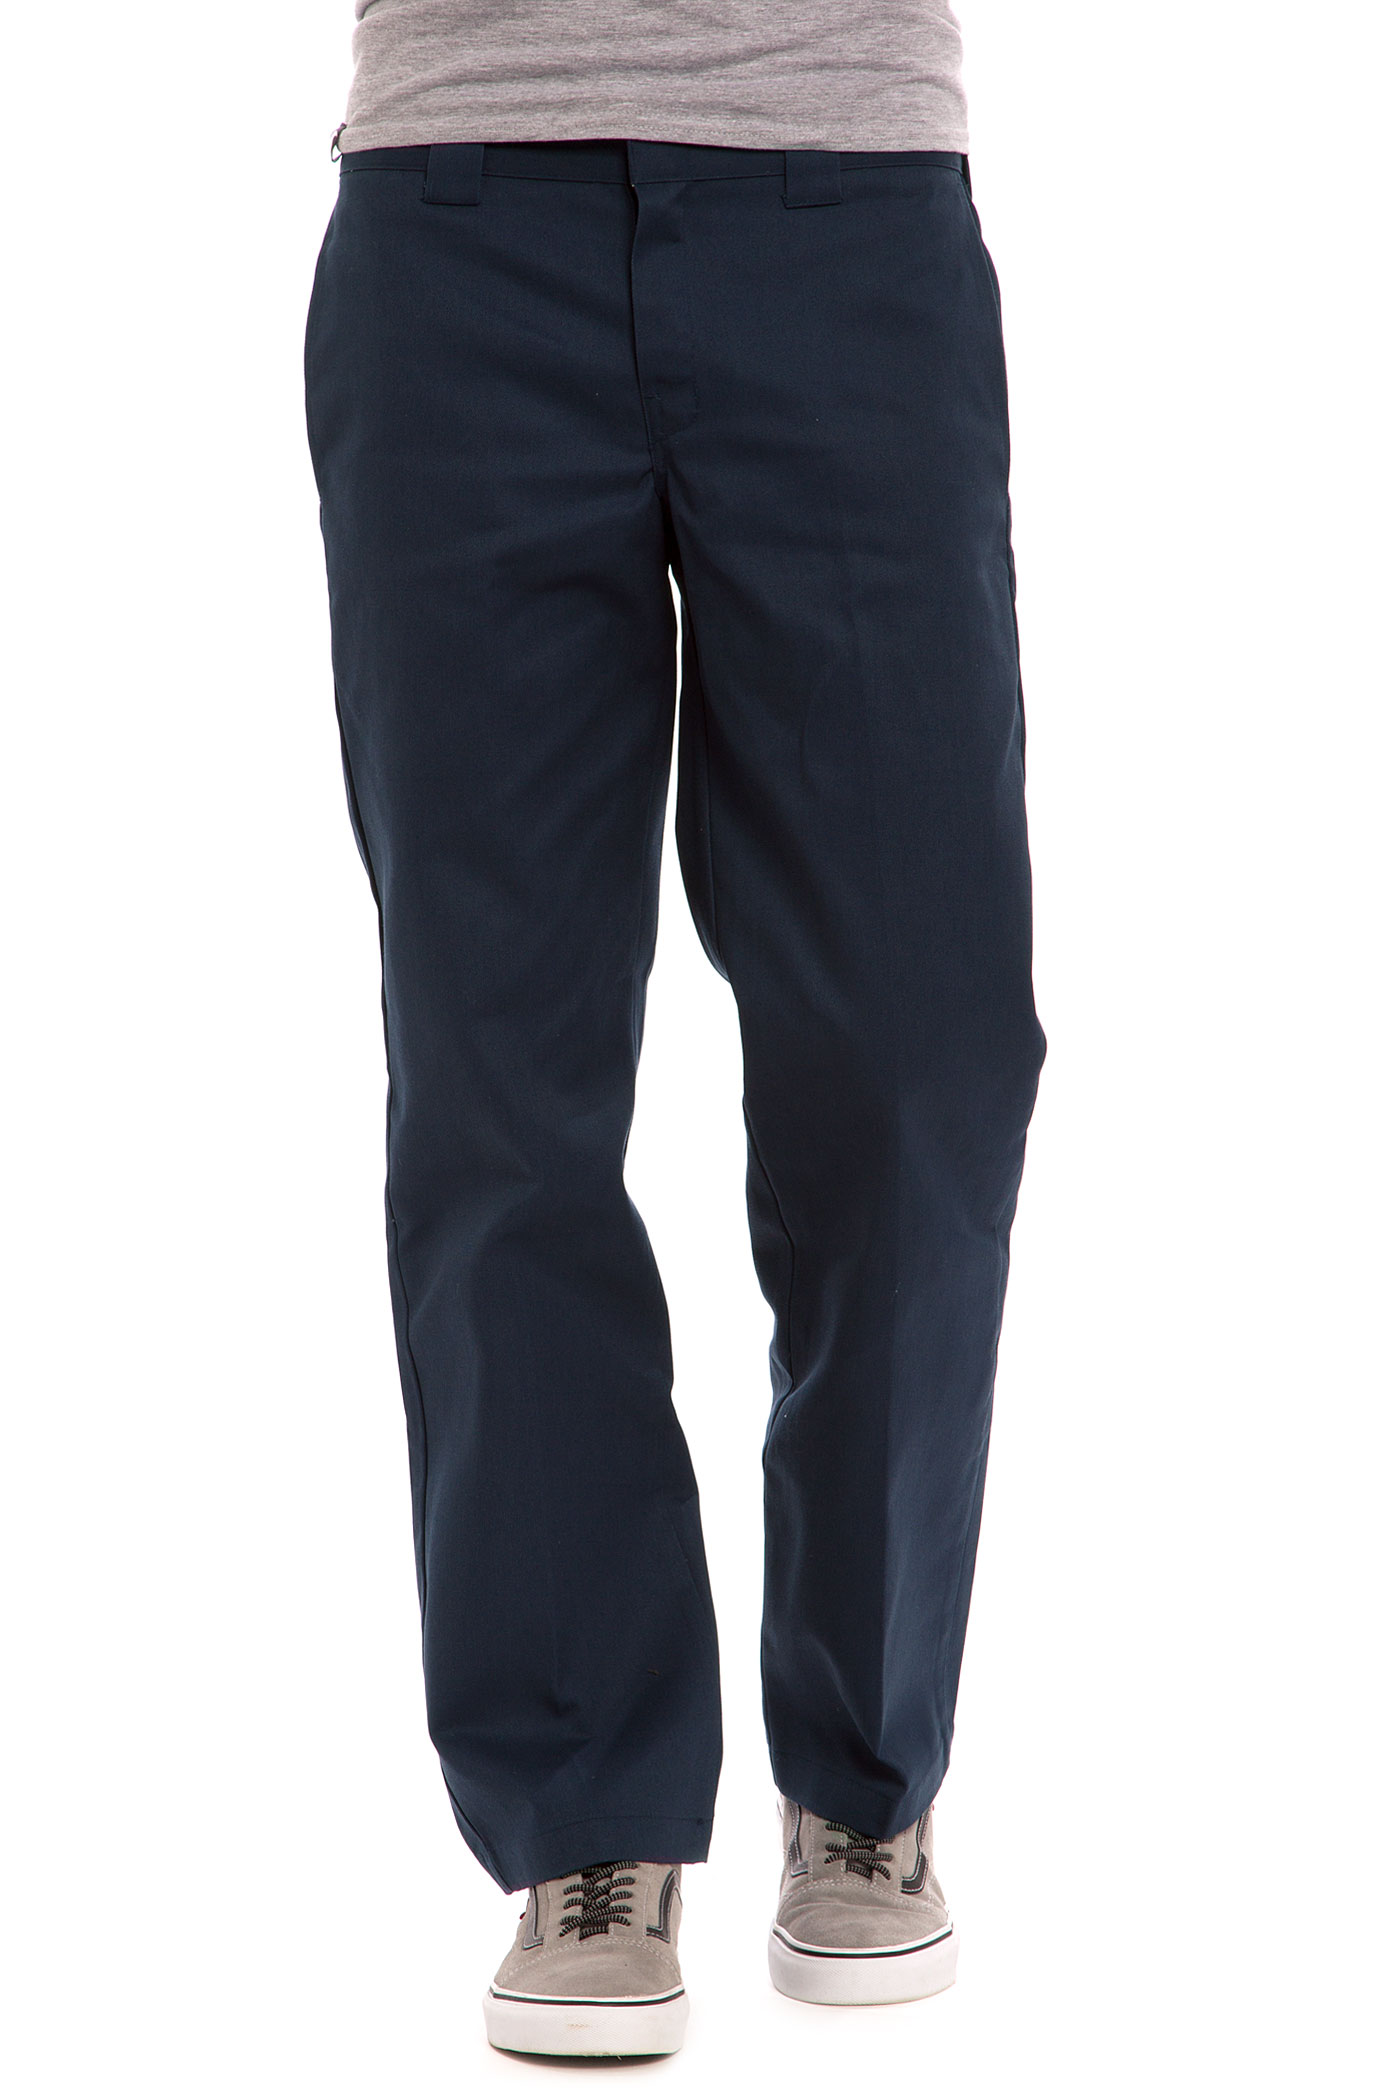 Dickies 873 Slim Straight Workpant Pants (navy blue) buy at ...